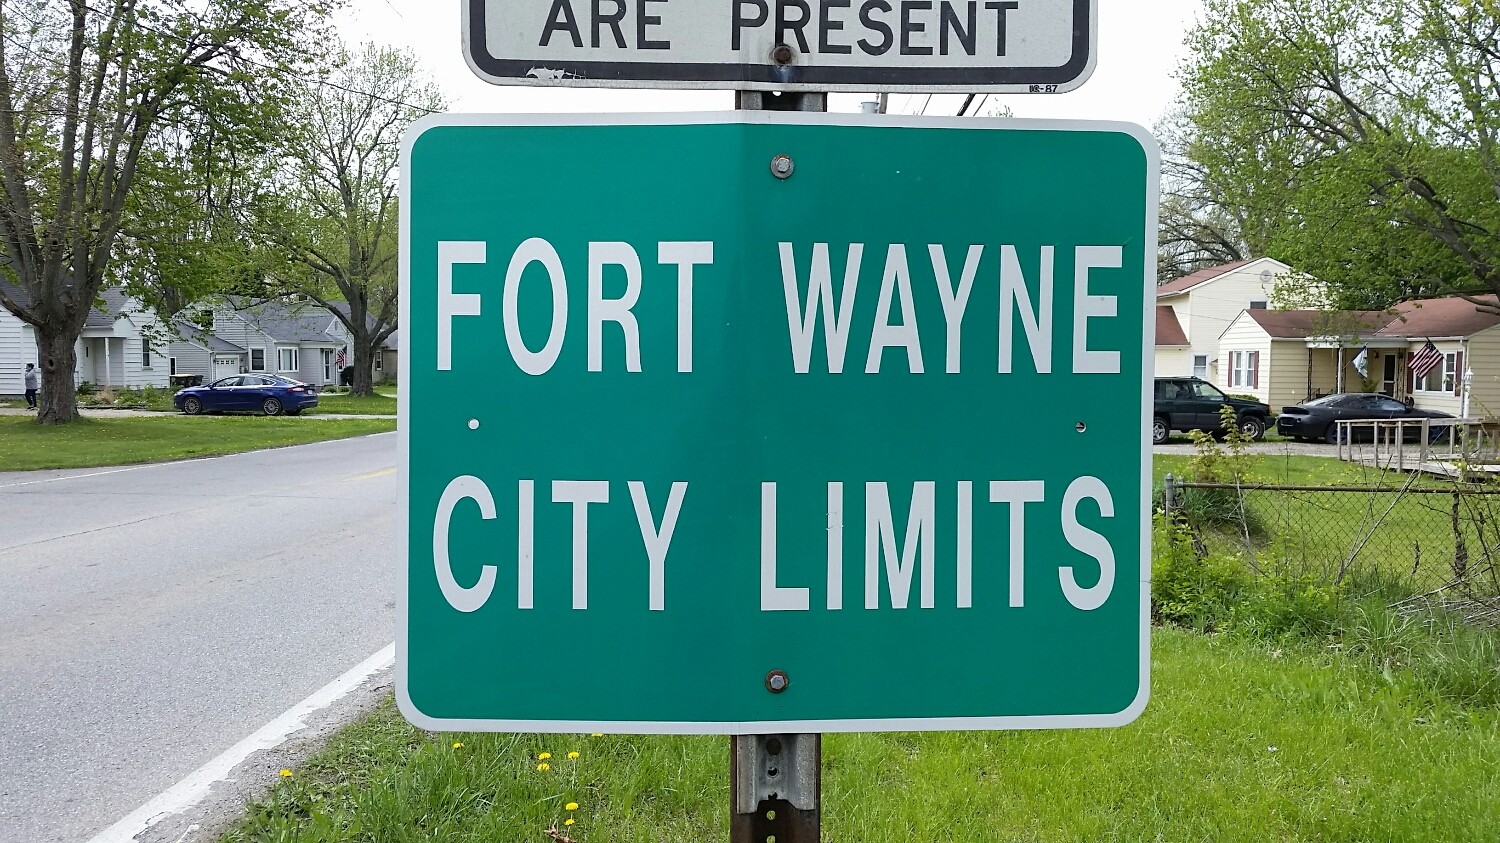 Welcome to Fort Wayne